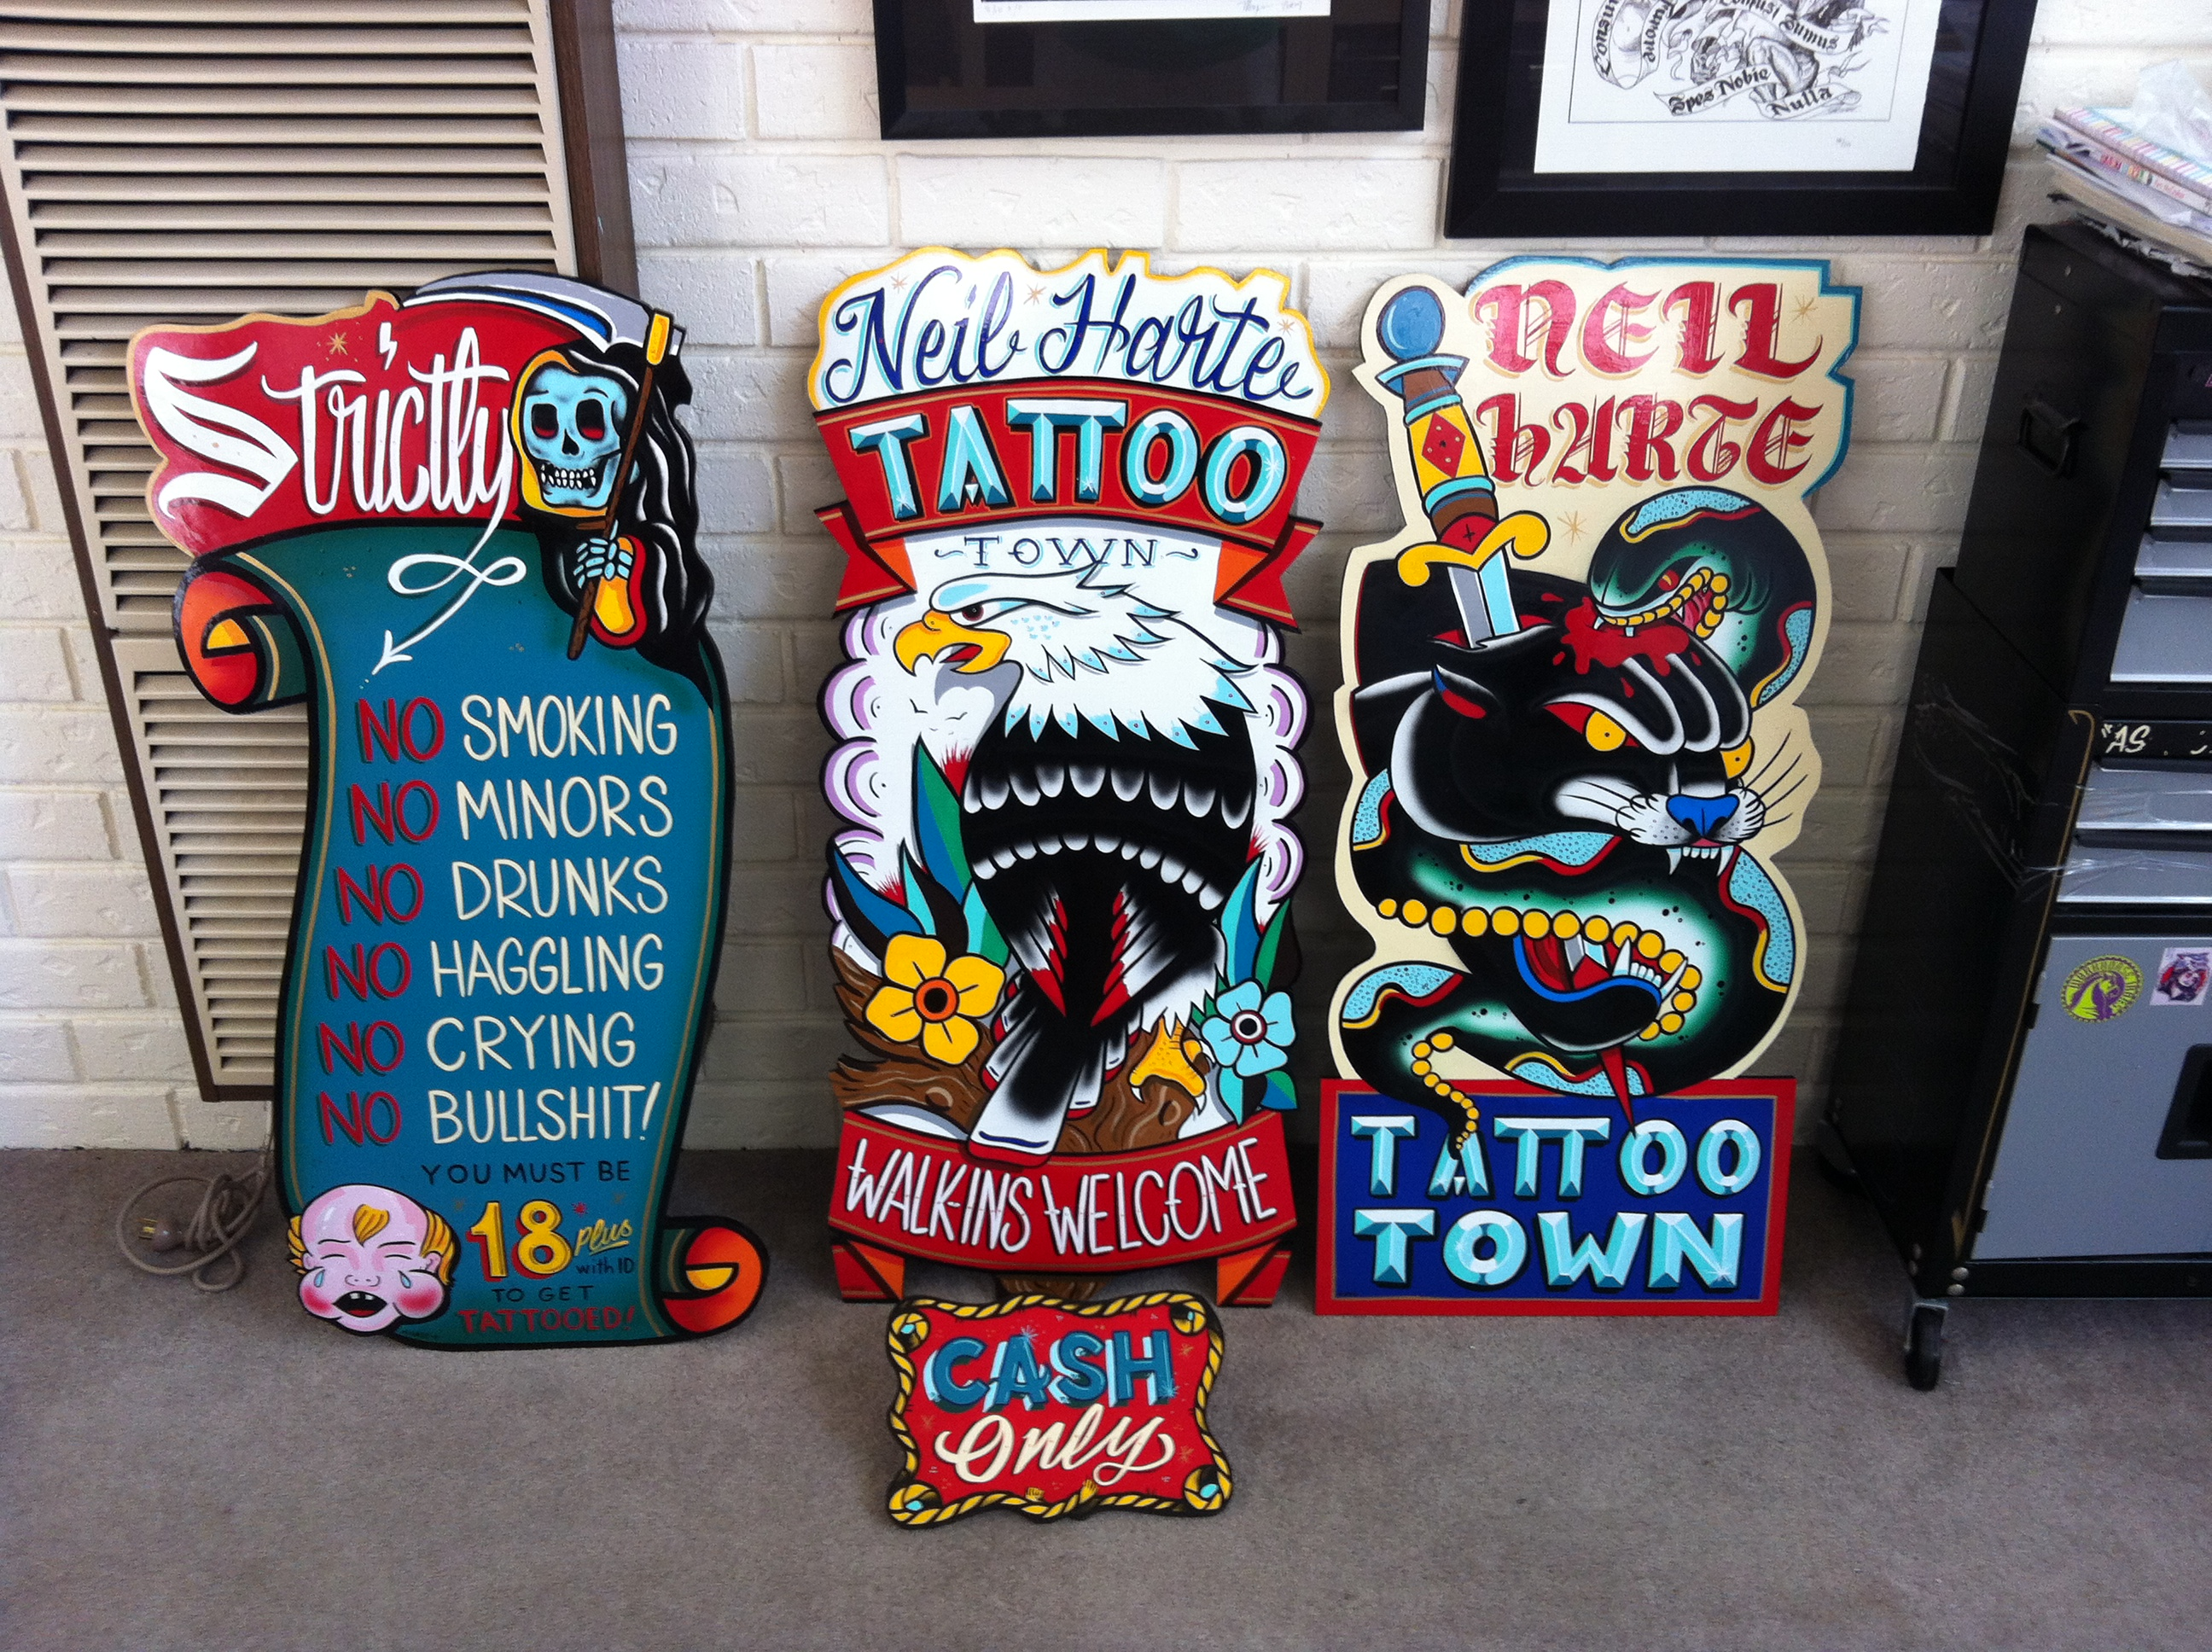 Top tattoo parlor signs images for pinterest tattoos for Best tattoo shop dublin